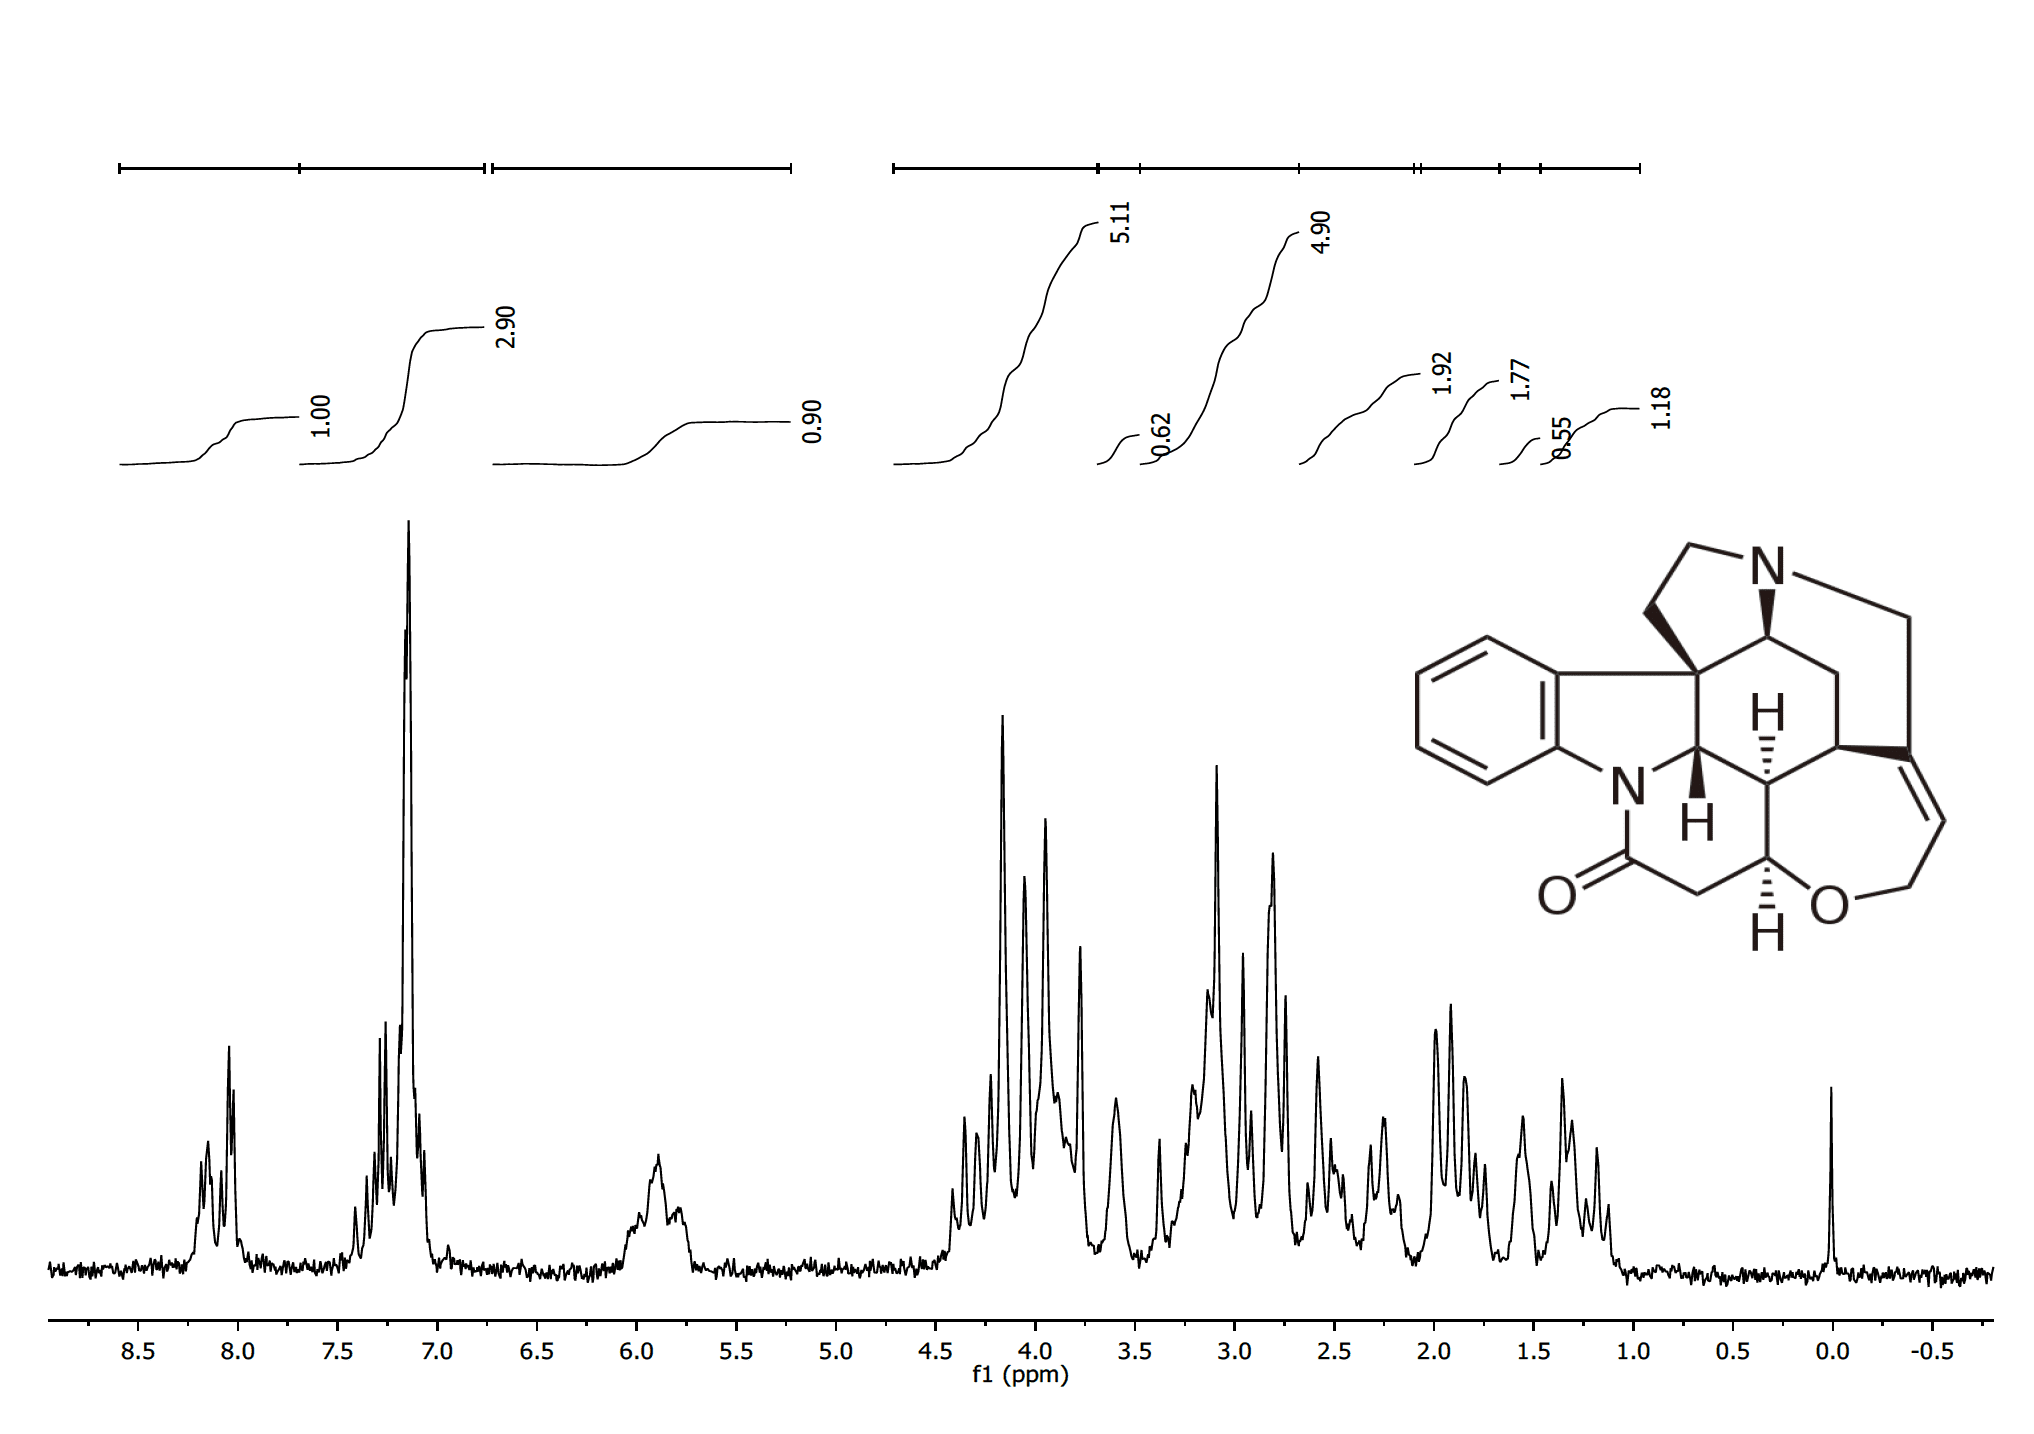 Anasazi Instruments Strychnine 1H spectrum with molecular structure graph